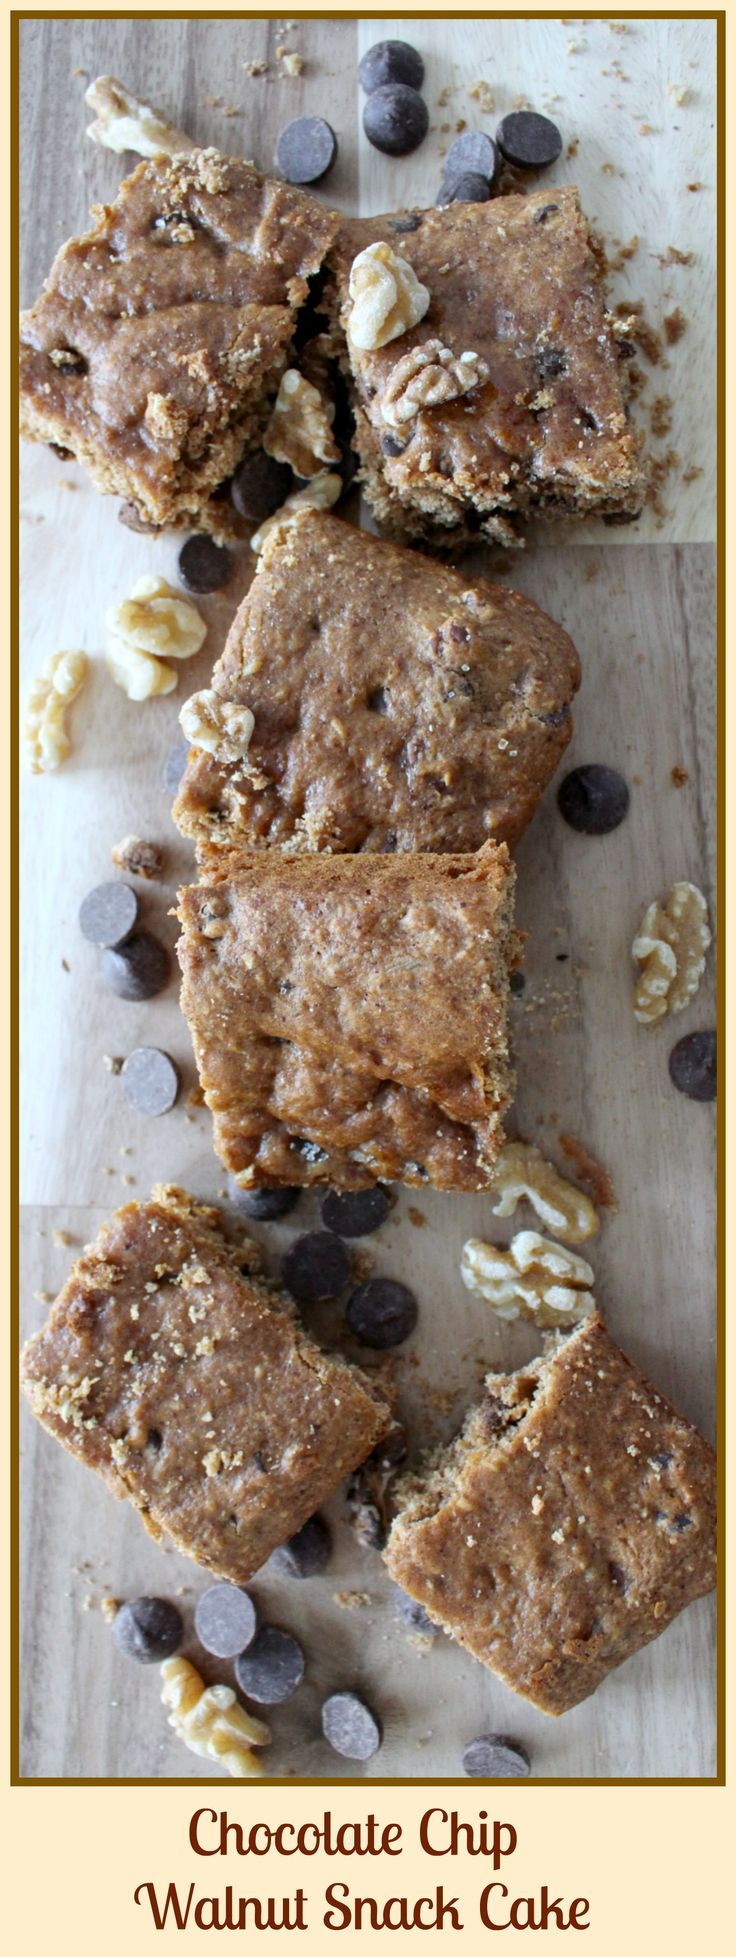 Chocolate chip walnut snack cake with images snack